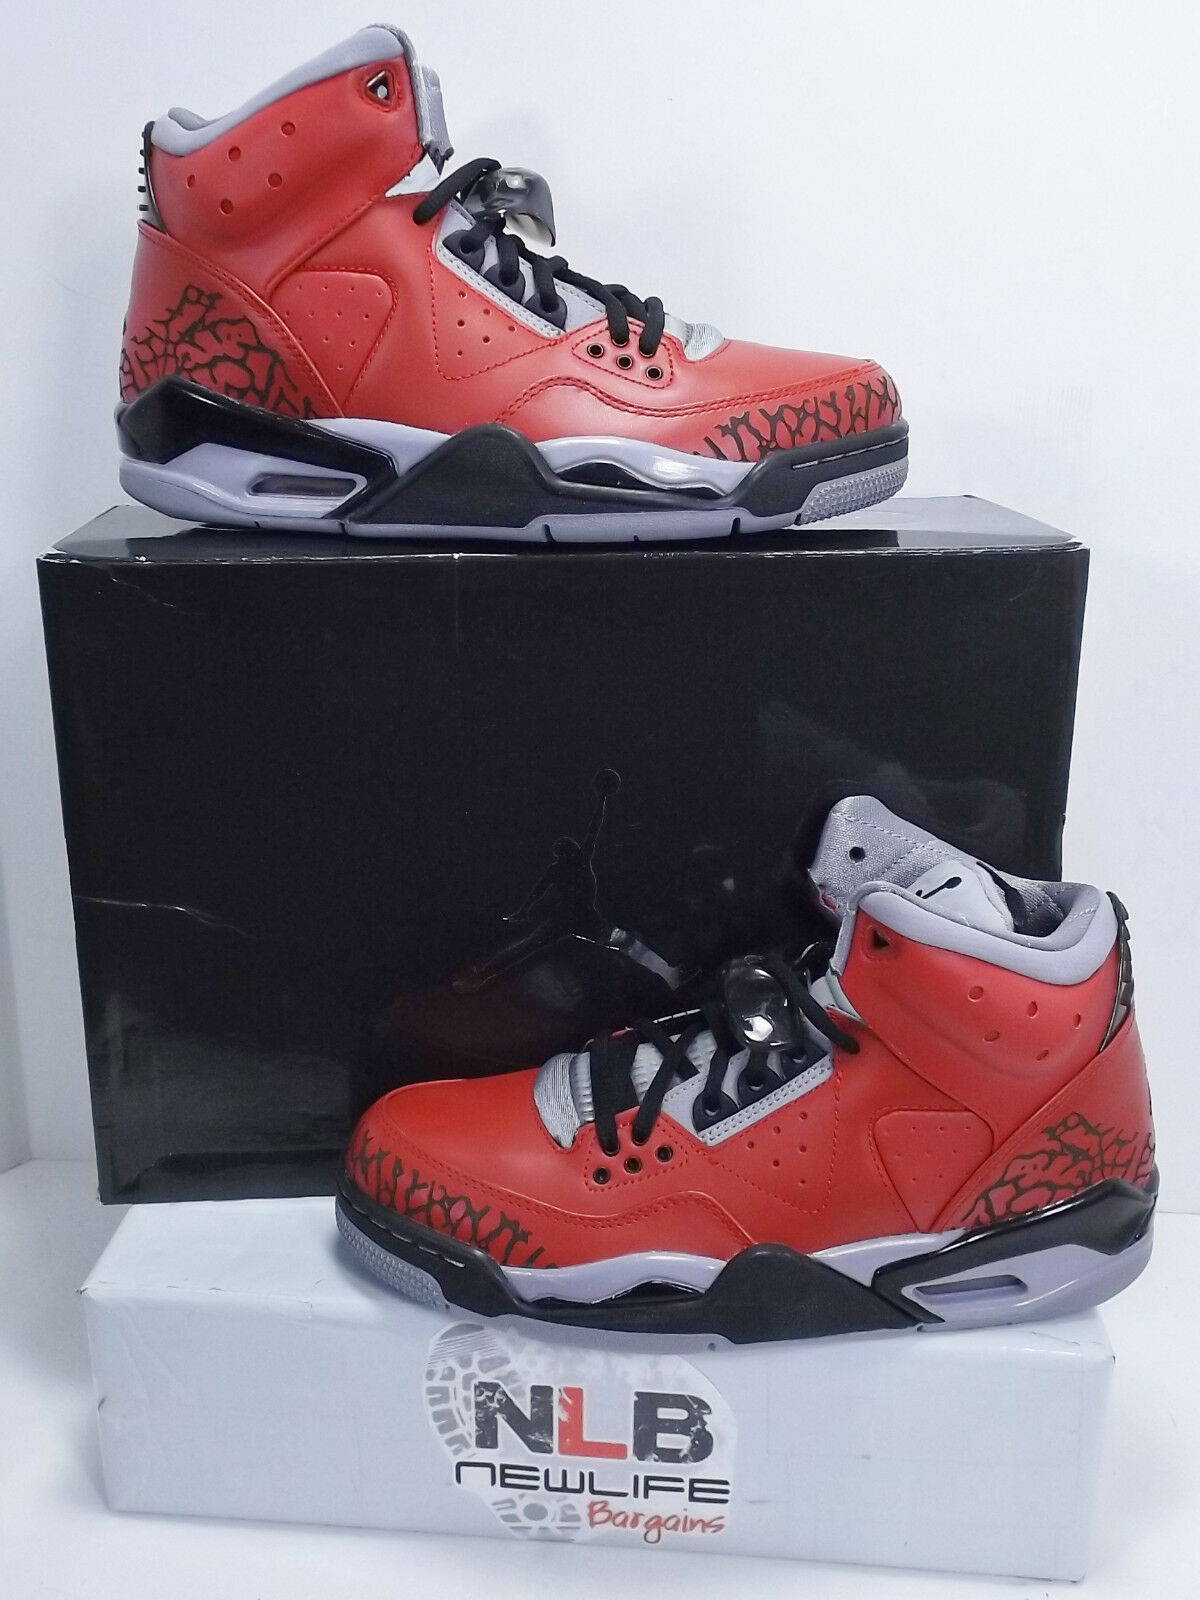 Nike Jordan Rare Air 407361-601 Varsity Red/Black/Cement Grey Men's Comfortable New shoes for men and women, limited time discount